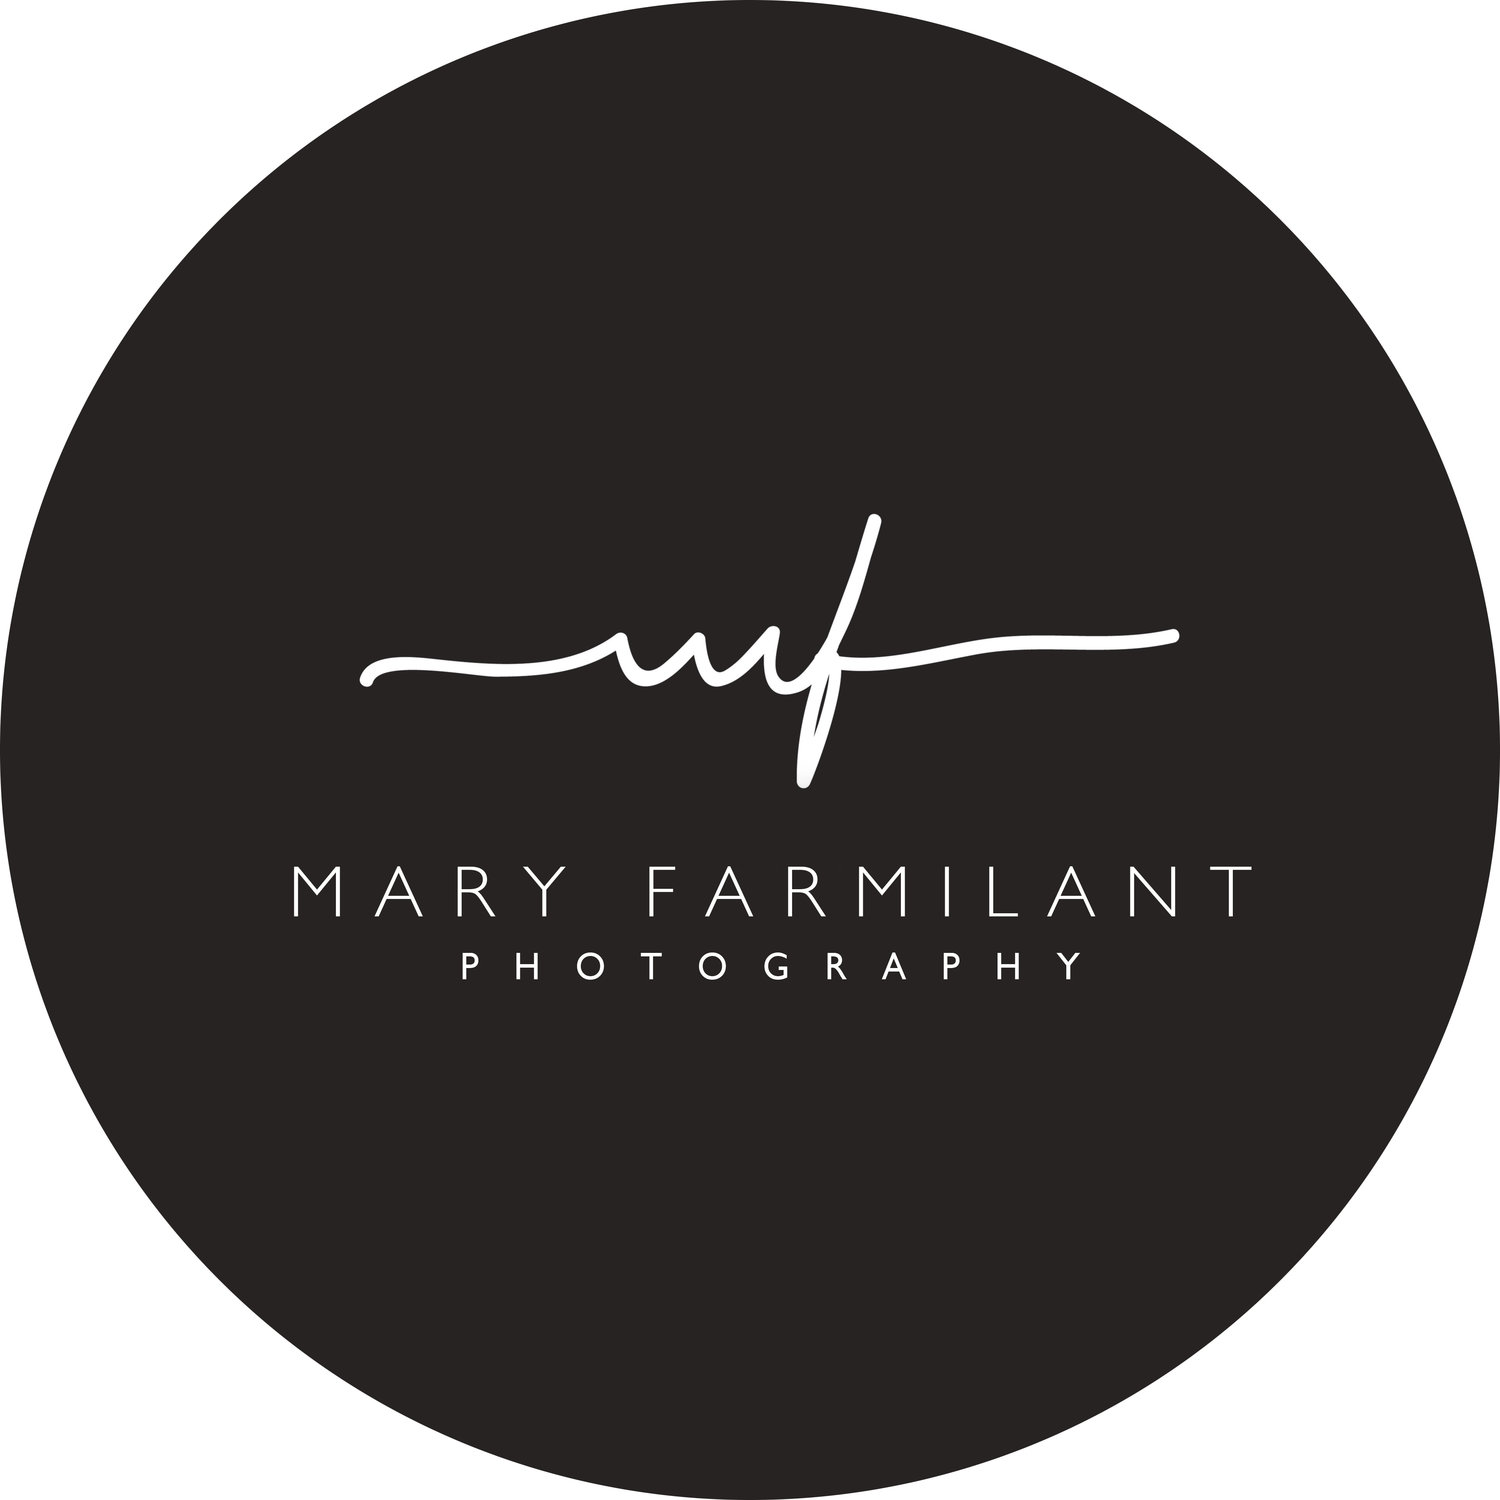 MARY FARMILANT